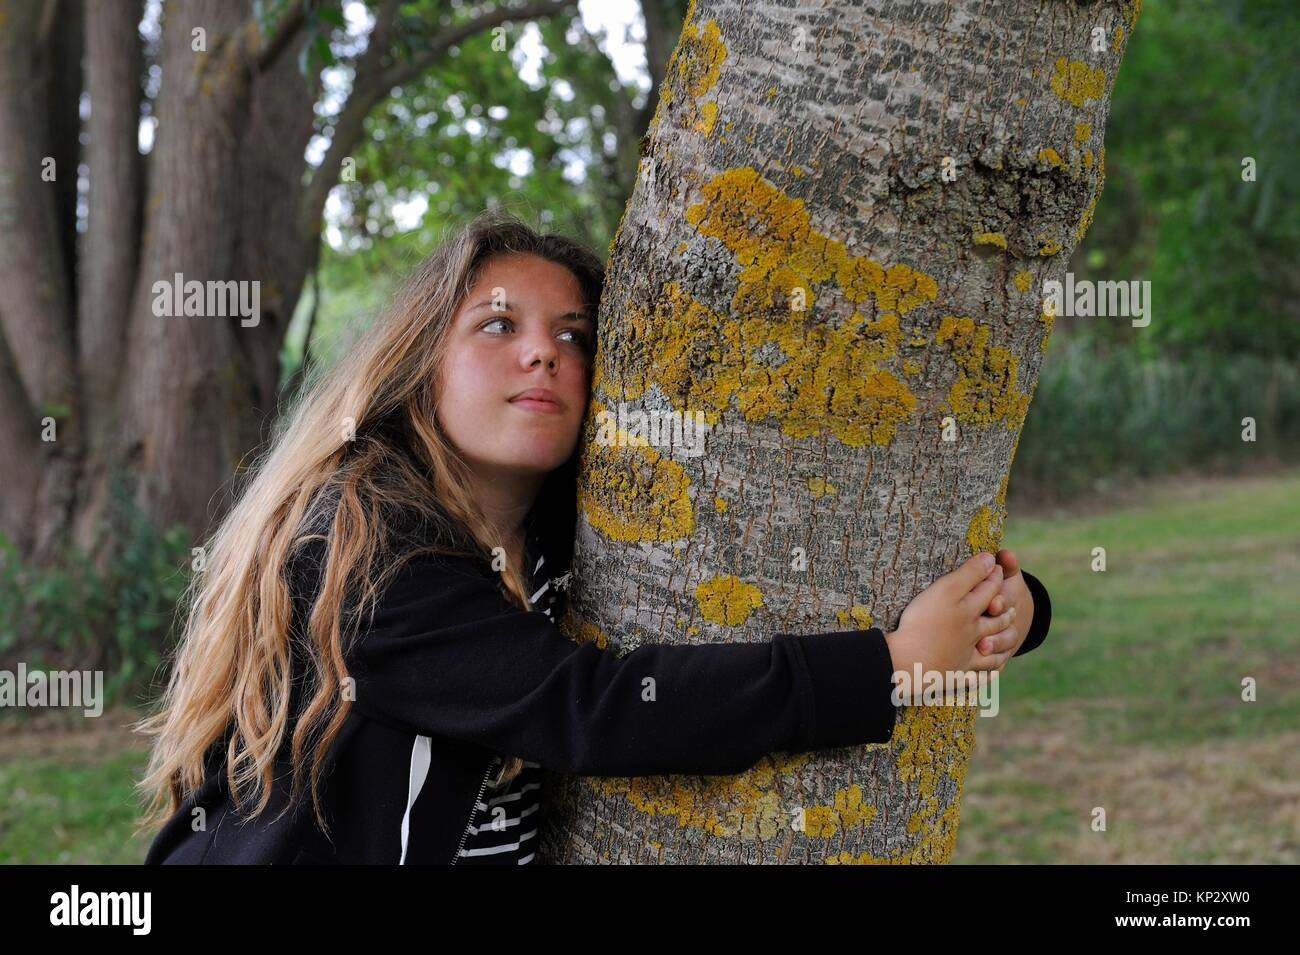 young girl embracing the trunk of an ash tree, France, Europe. - Stock Image